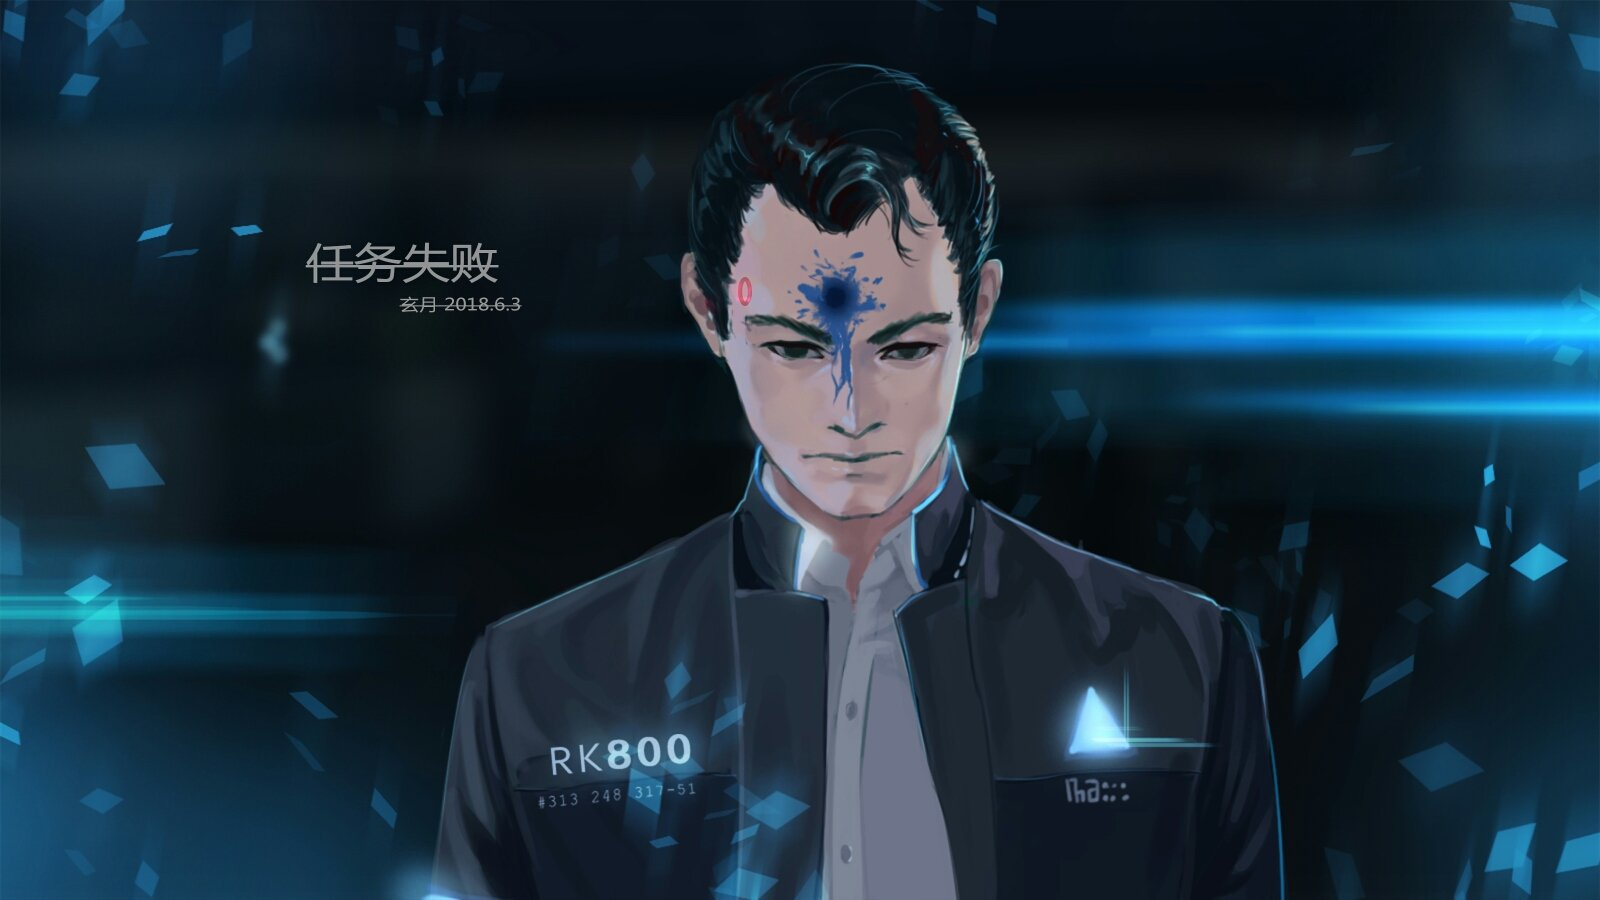 Free Download Connor Detroit Become Human Wallpaper 2335918